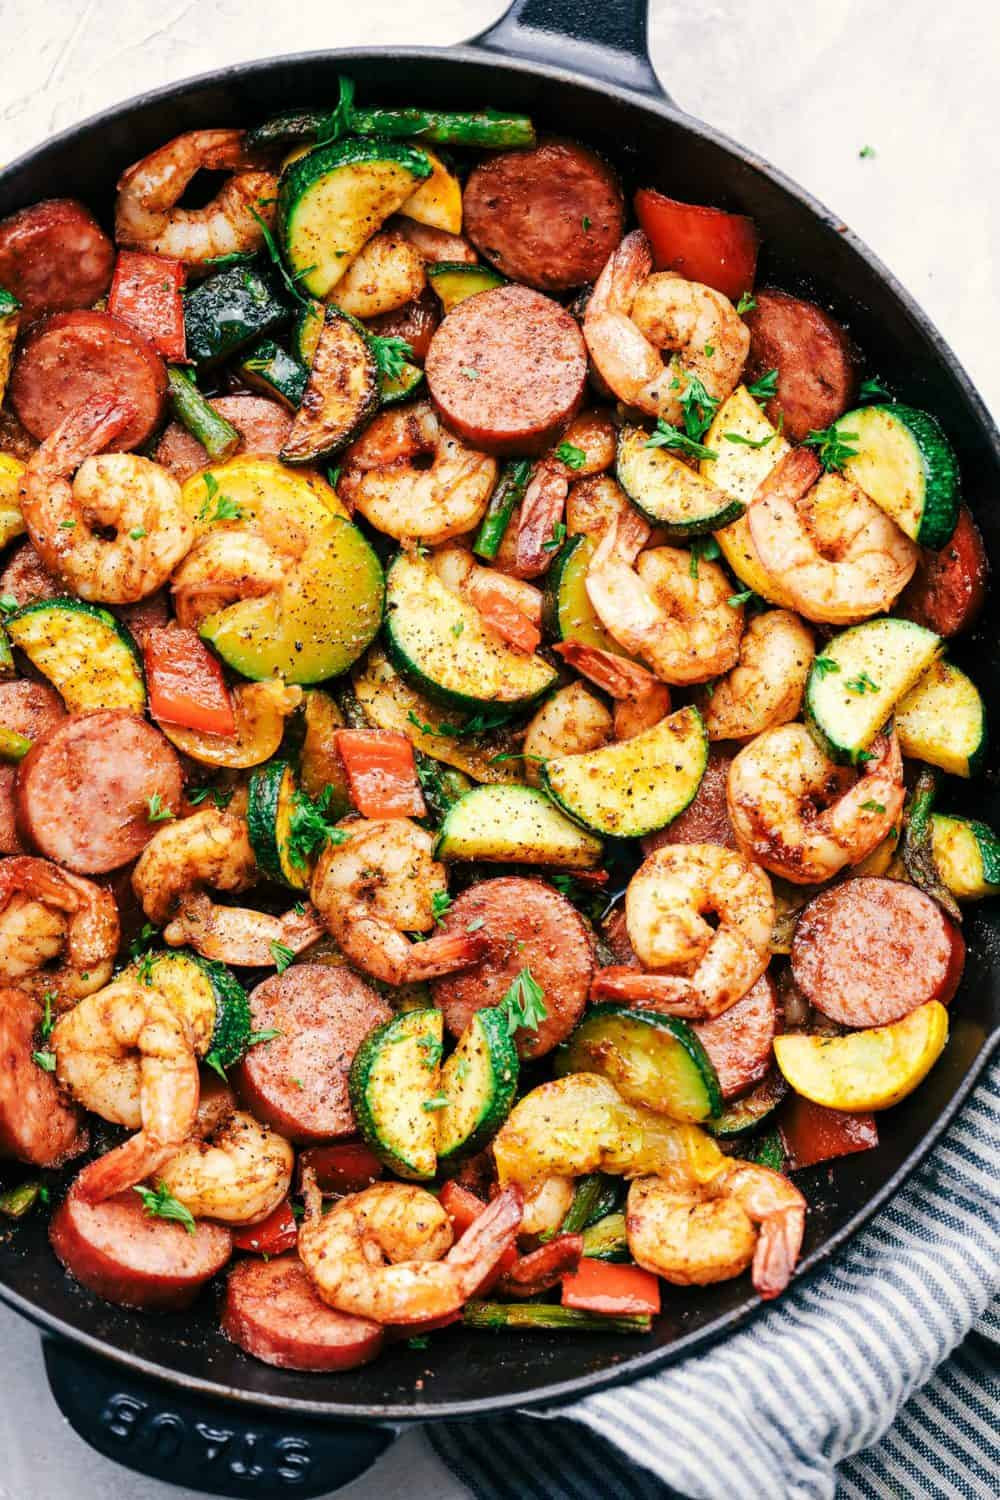 Sausage Dinner Ideas  Cajun Shrimp and Sausage Ve able Skillet